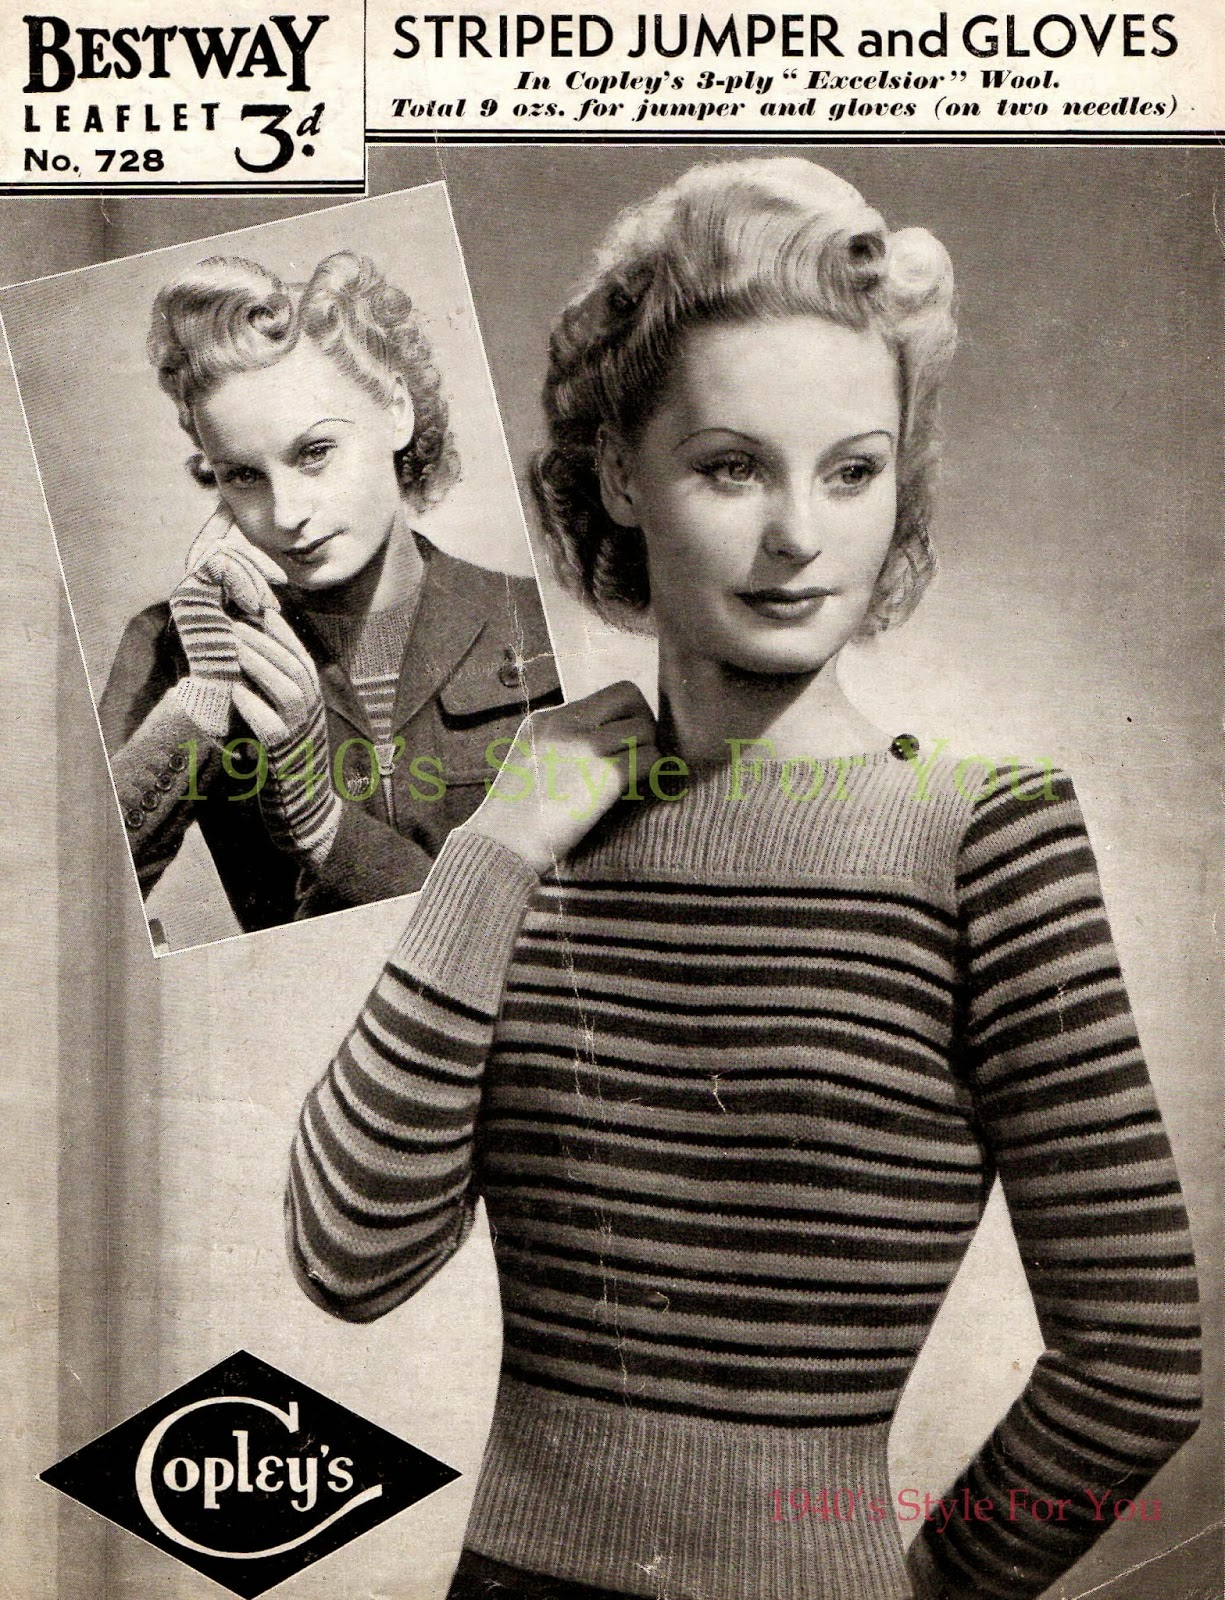 1940s Style For You: Bestway Vintage Knitting Pattern Archive